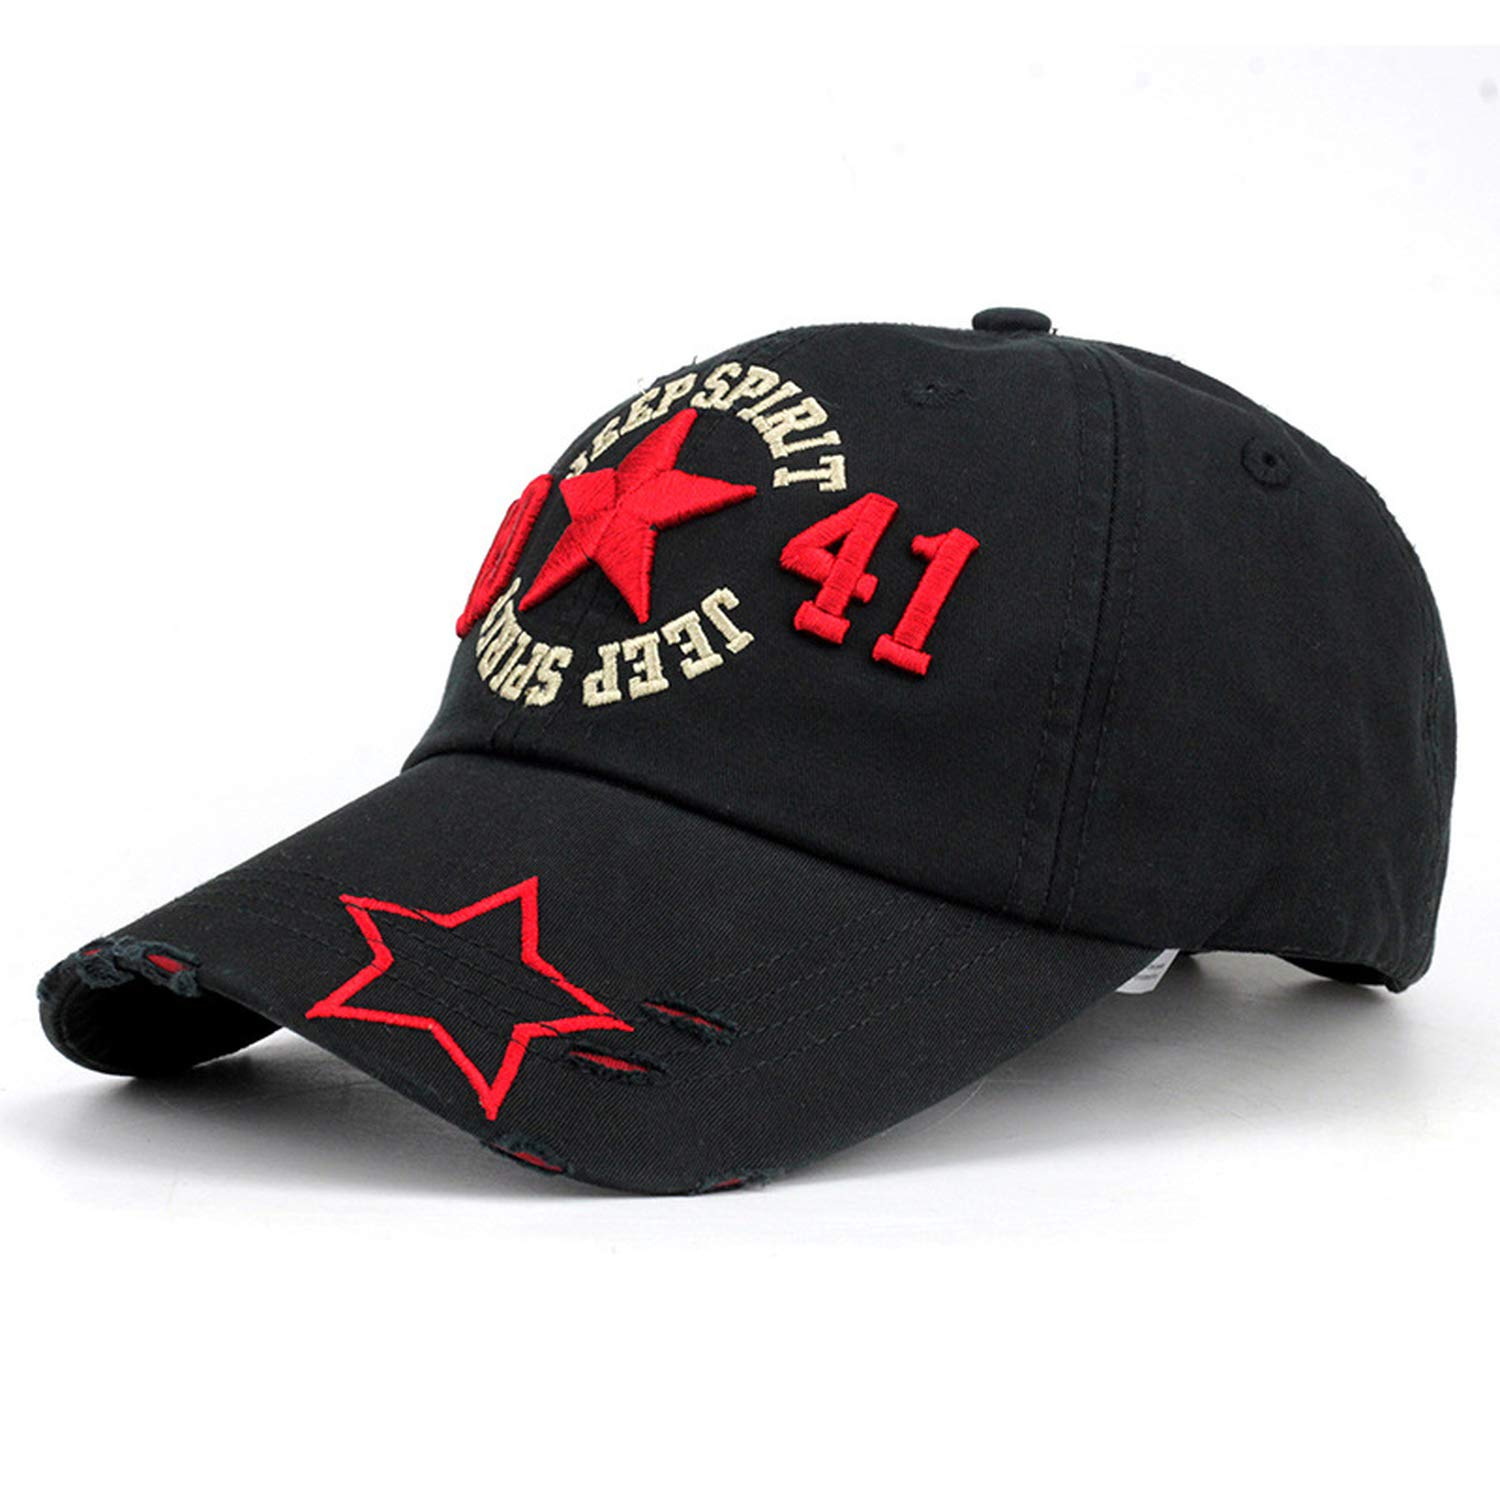 Baseball Cap Men Adult Army Cap Hip Hop Casquette Washed Cotton Adjustable Solid Color Hat Gorras para Hombre Black at Amazon Womens Clothing store: